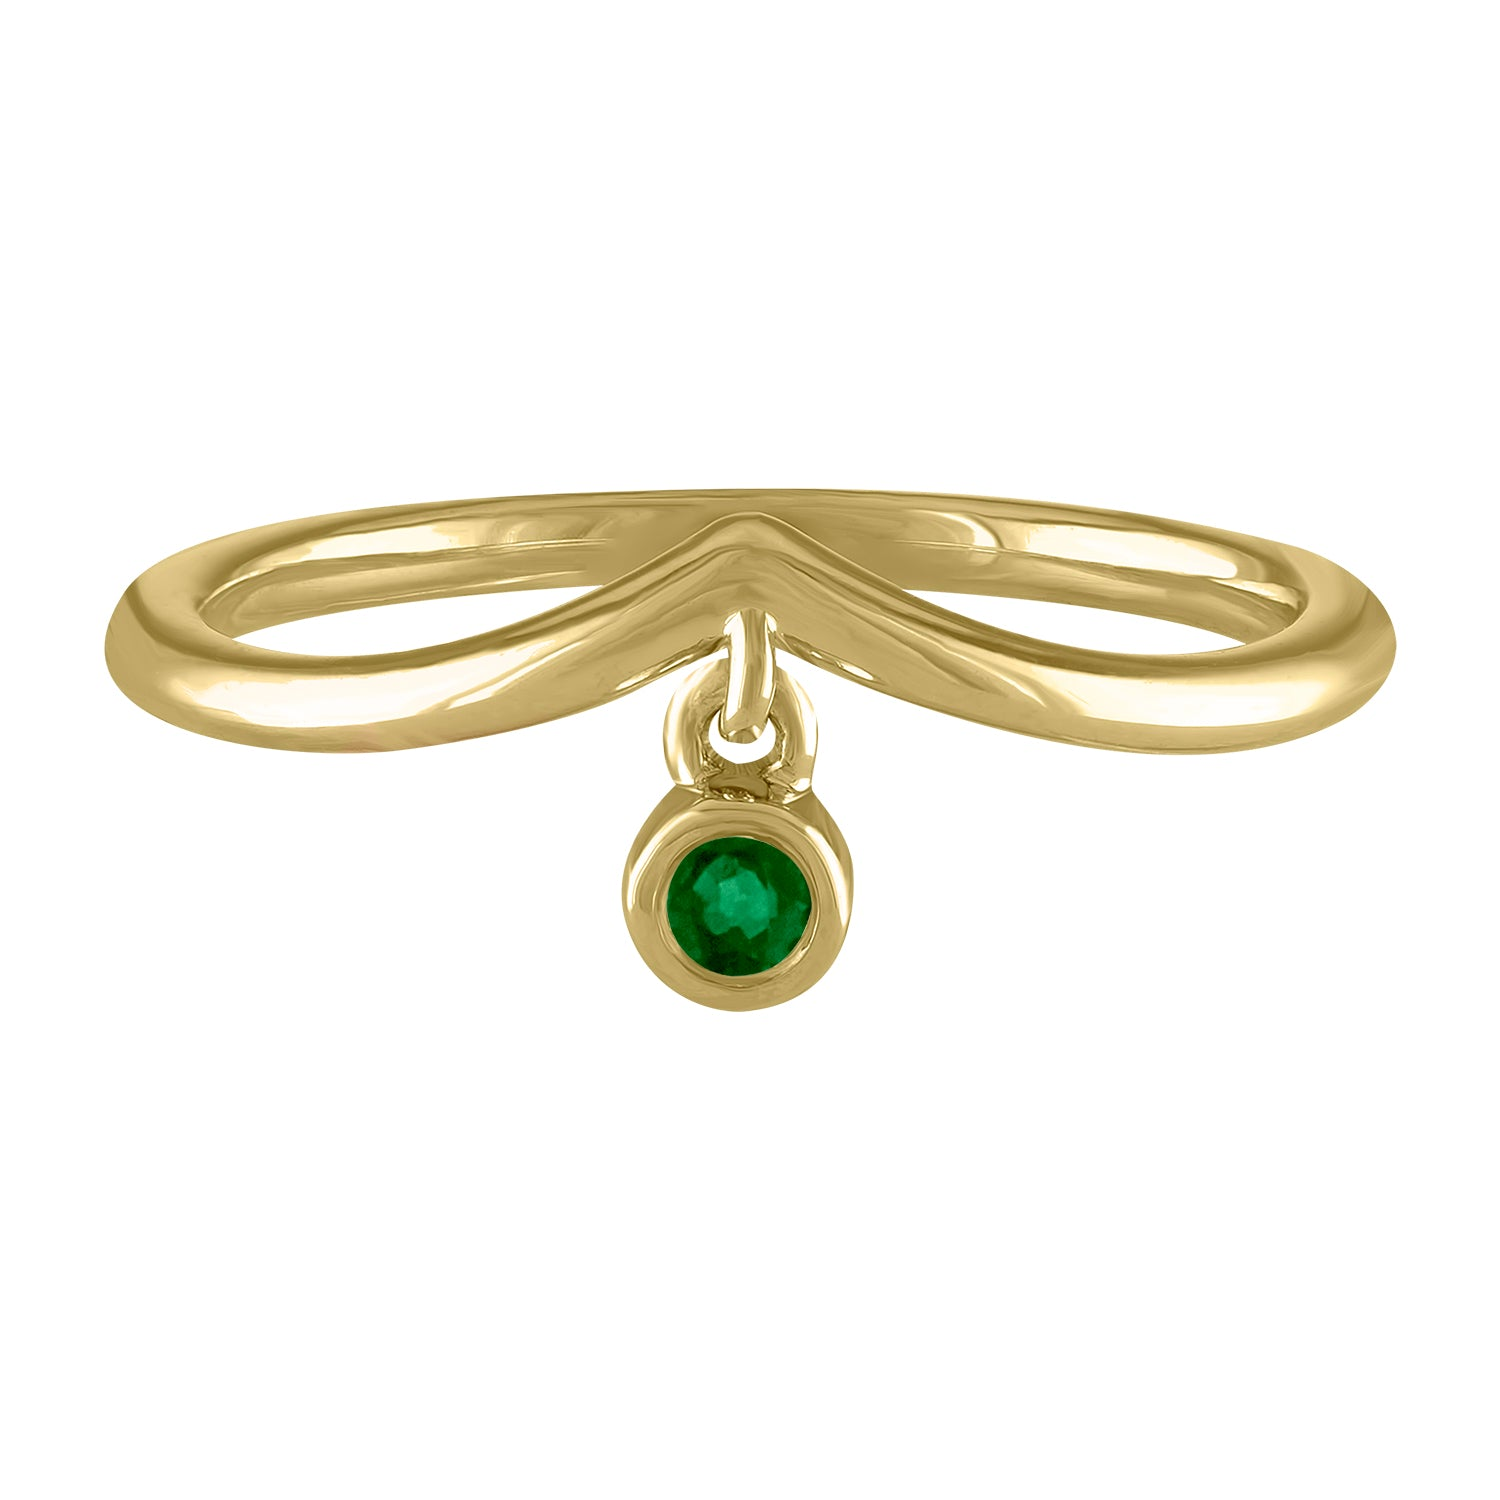 Curved band with dangling bezel set emerald